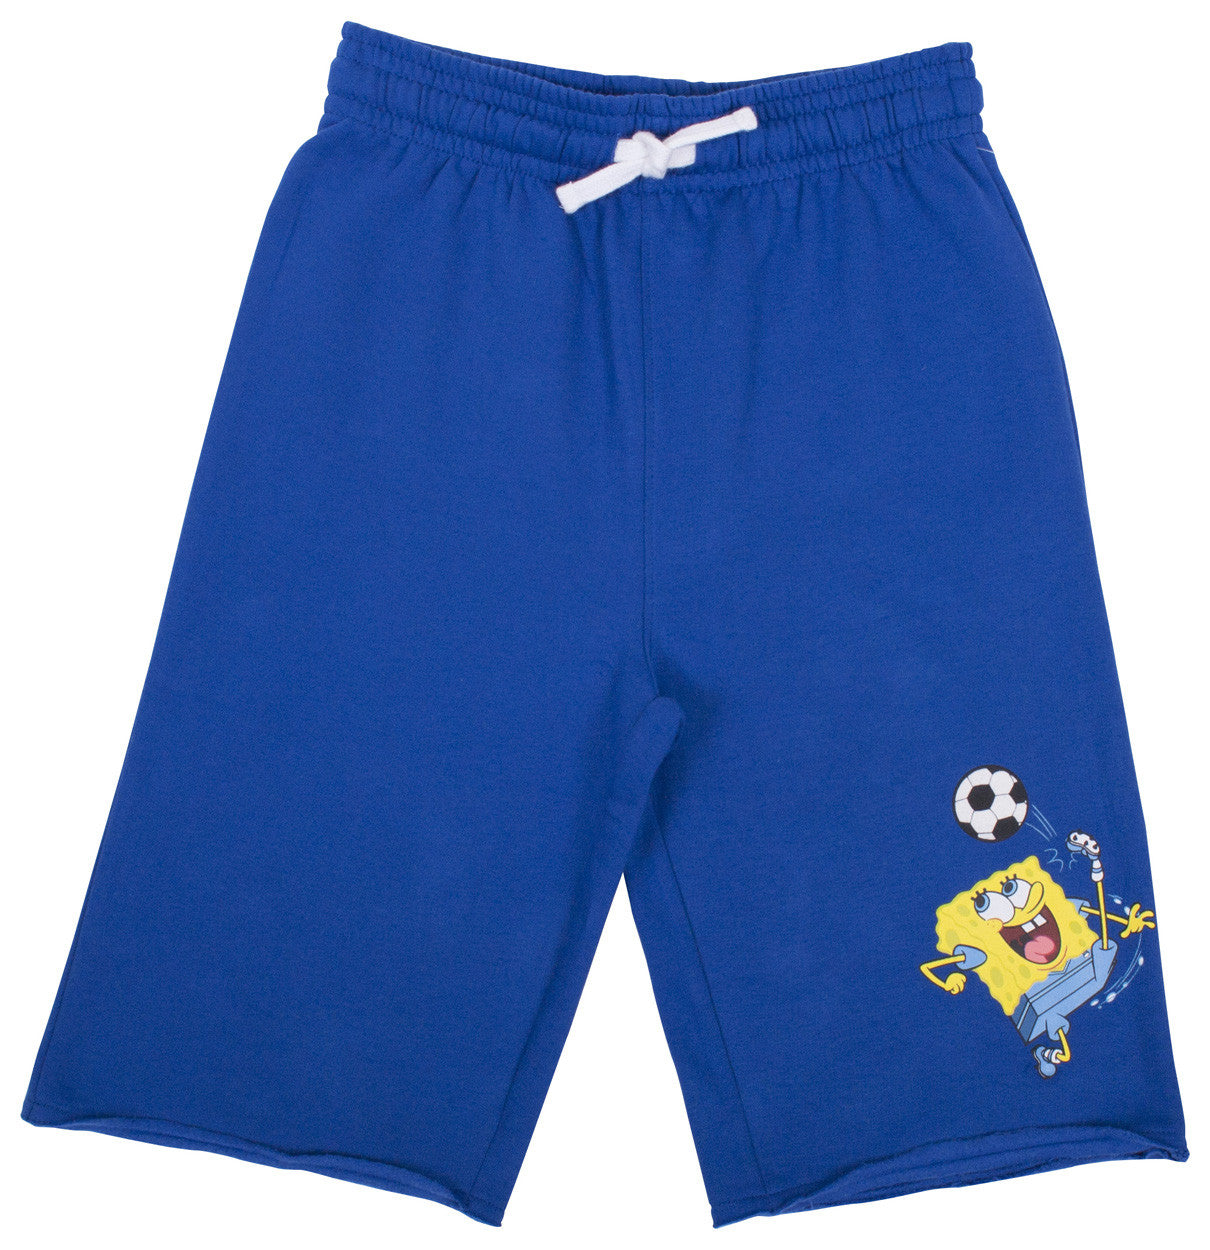 SpongeBob SquarePants Football Fleece Shorts